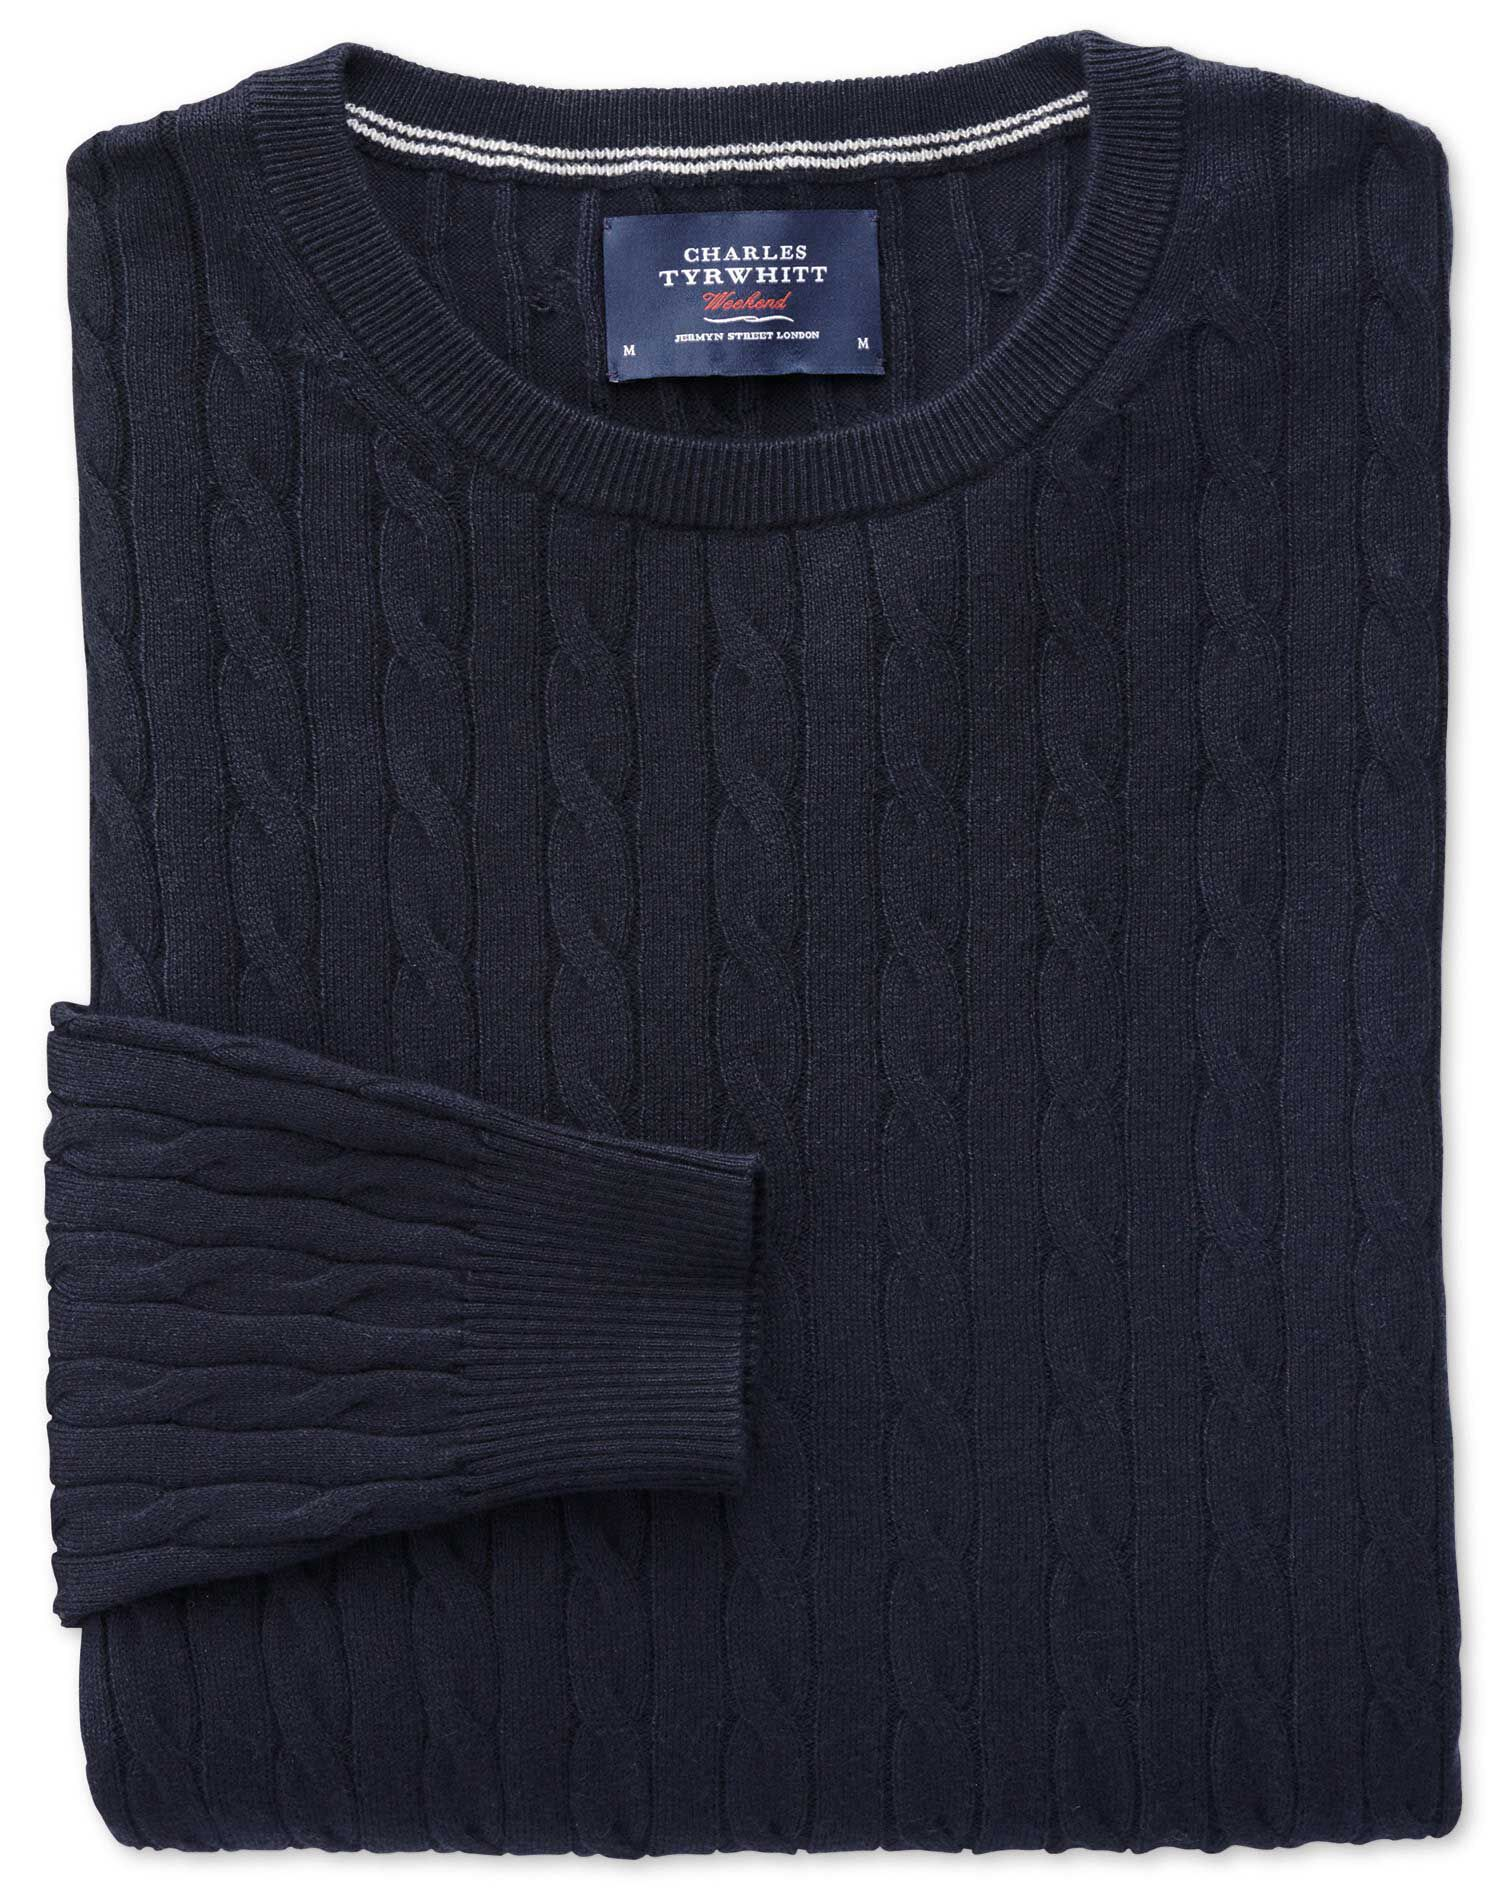 Navy Cotton Cashmere Cable Crew Neck Jumper Size XXXL by Charles Tyrwhitt